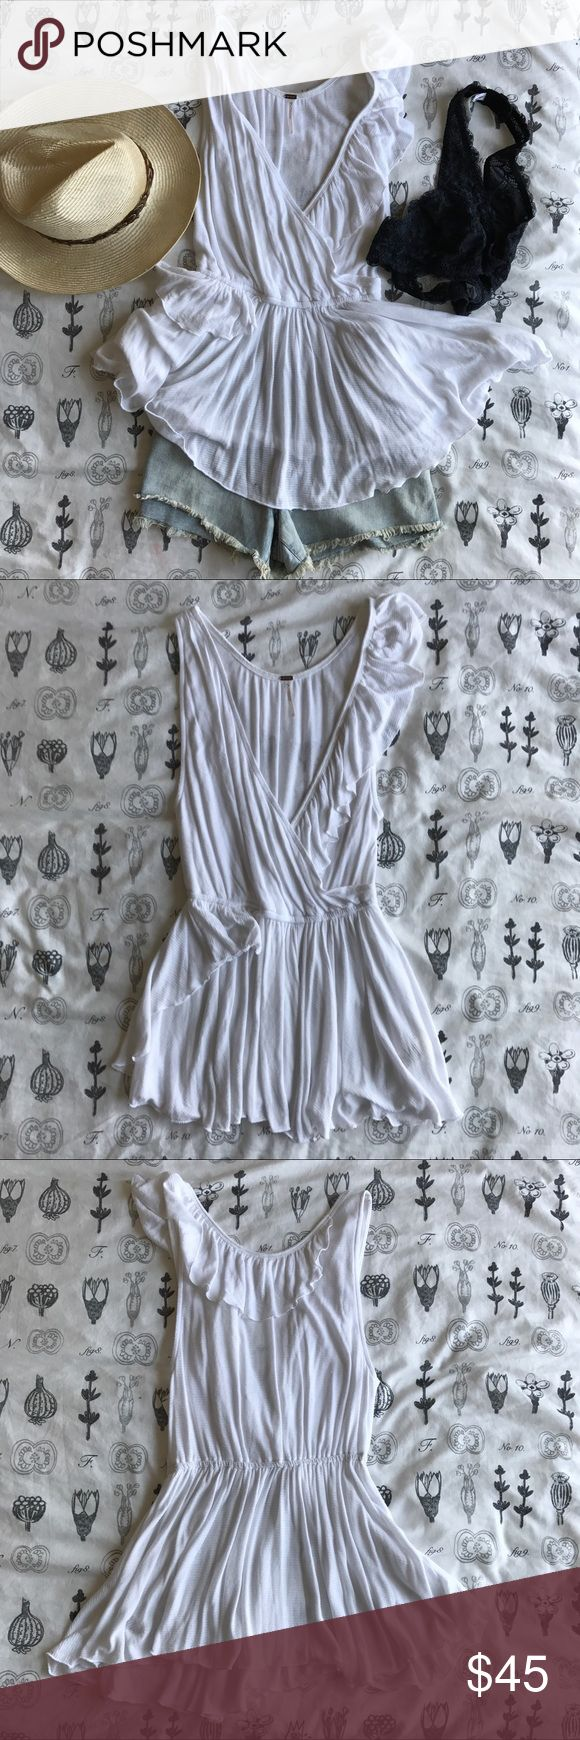 """NWOT Free People White Float Away Ruffle Top This Free People Float Away Ruffle Top is delicately draped with ruffle trimming and waist-defining top. Designed for a loose fit. Deep v-neck with asymmetric ruffle trim. Top is pullover style. 100% rayon. Length measures about 28"""". Free People Tops Tank Tops"""